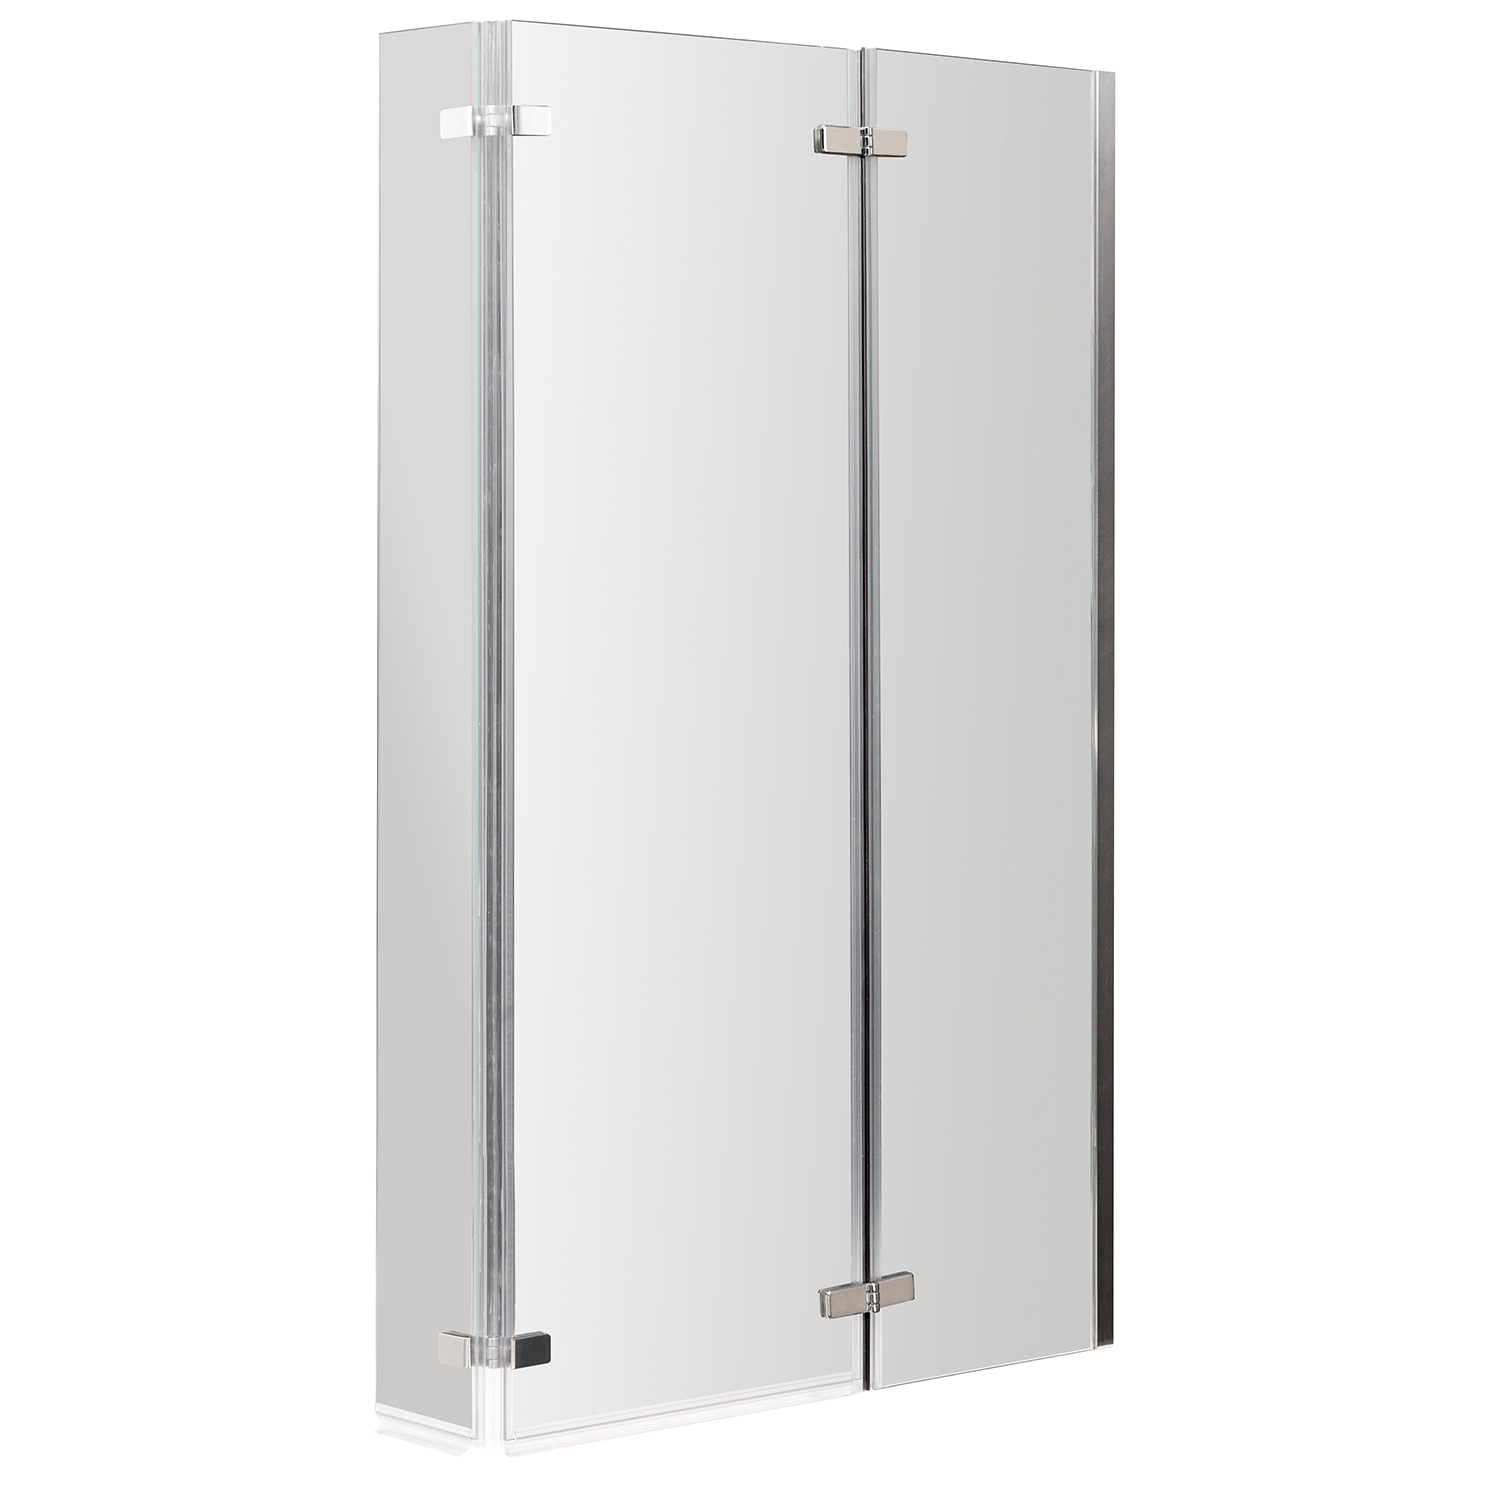 Premier Cove L-Shaped Shower Bath Panel Hinged Screen 1700mm x 700mm/850mm Left Handed-1